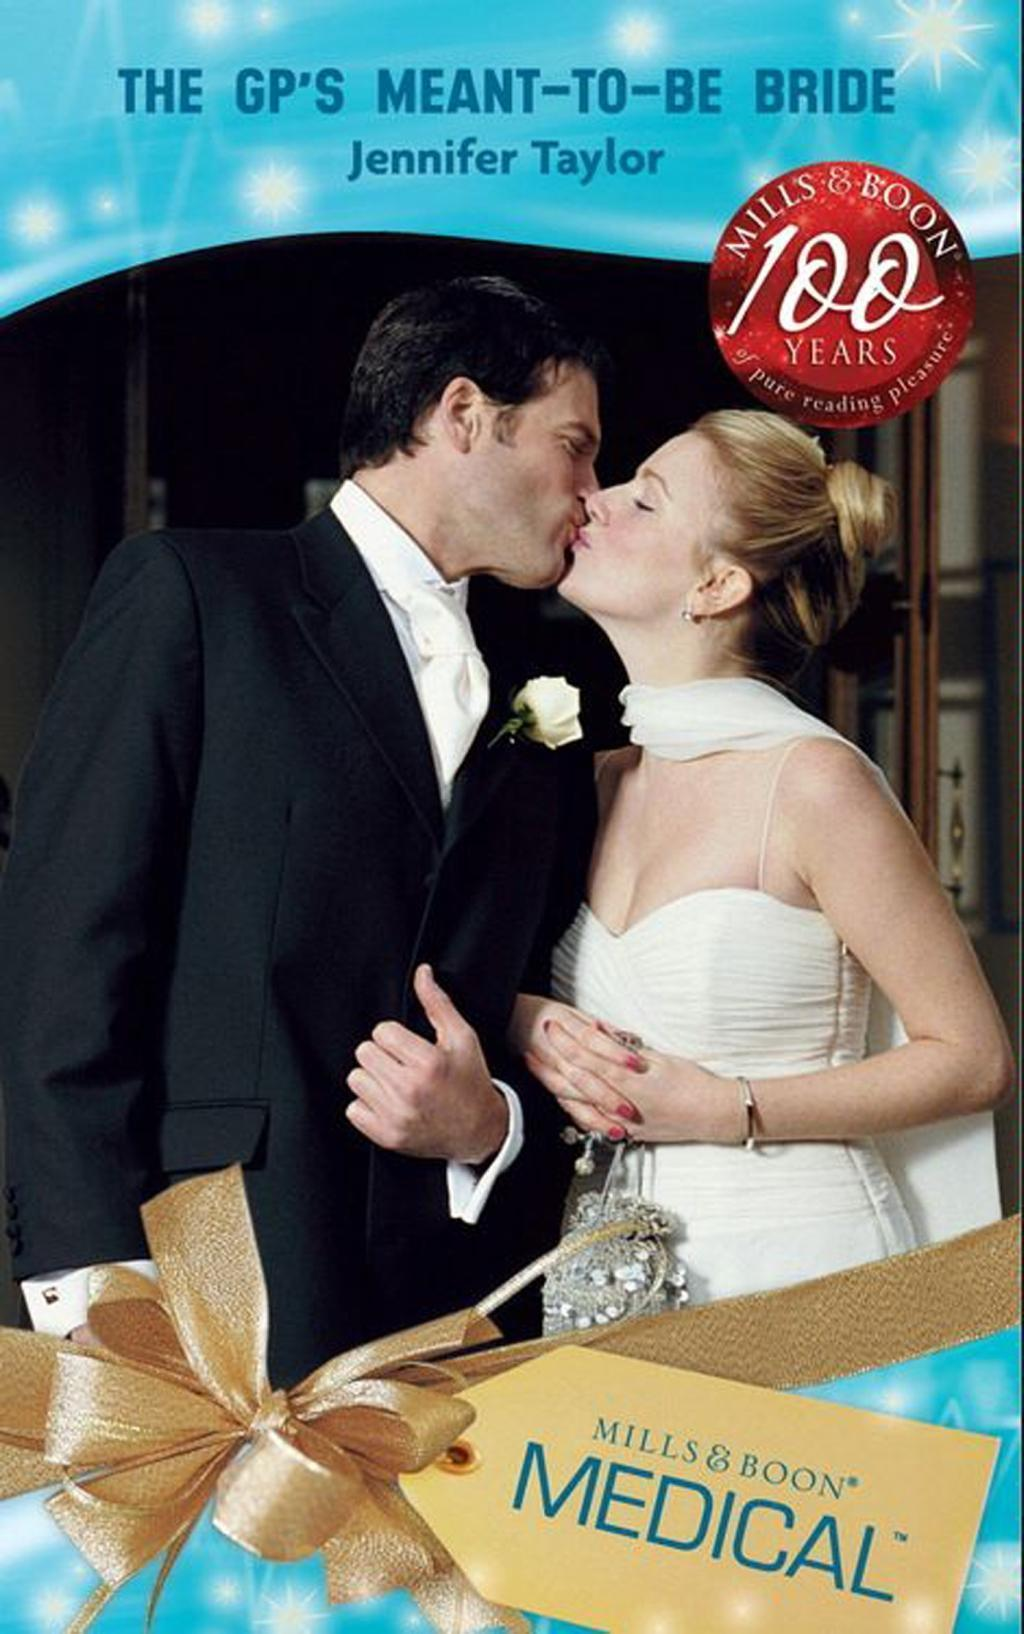 The GP's Meant-To-Be Bride (Mills & Boon Medical) (Dalverston Weddings, Book 2)